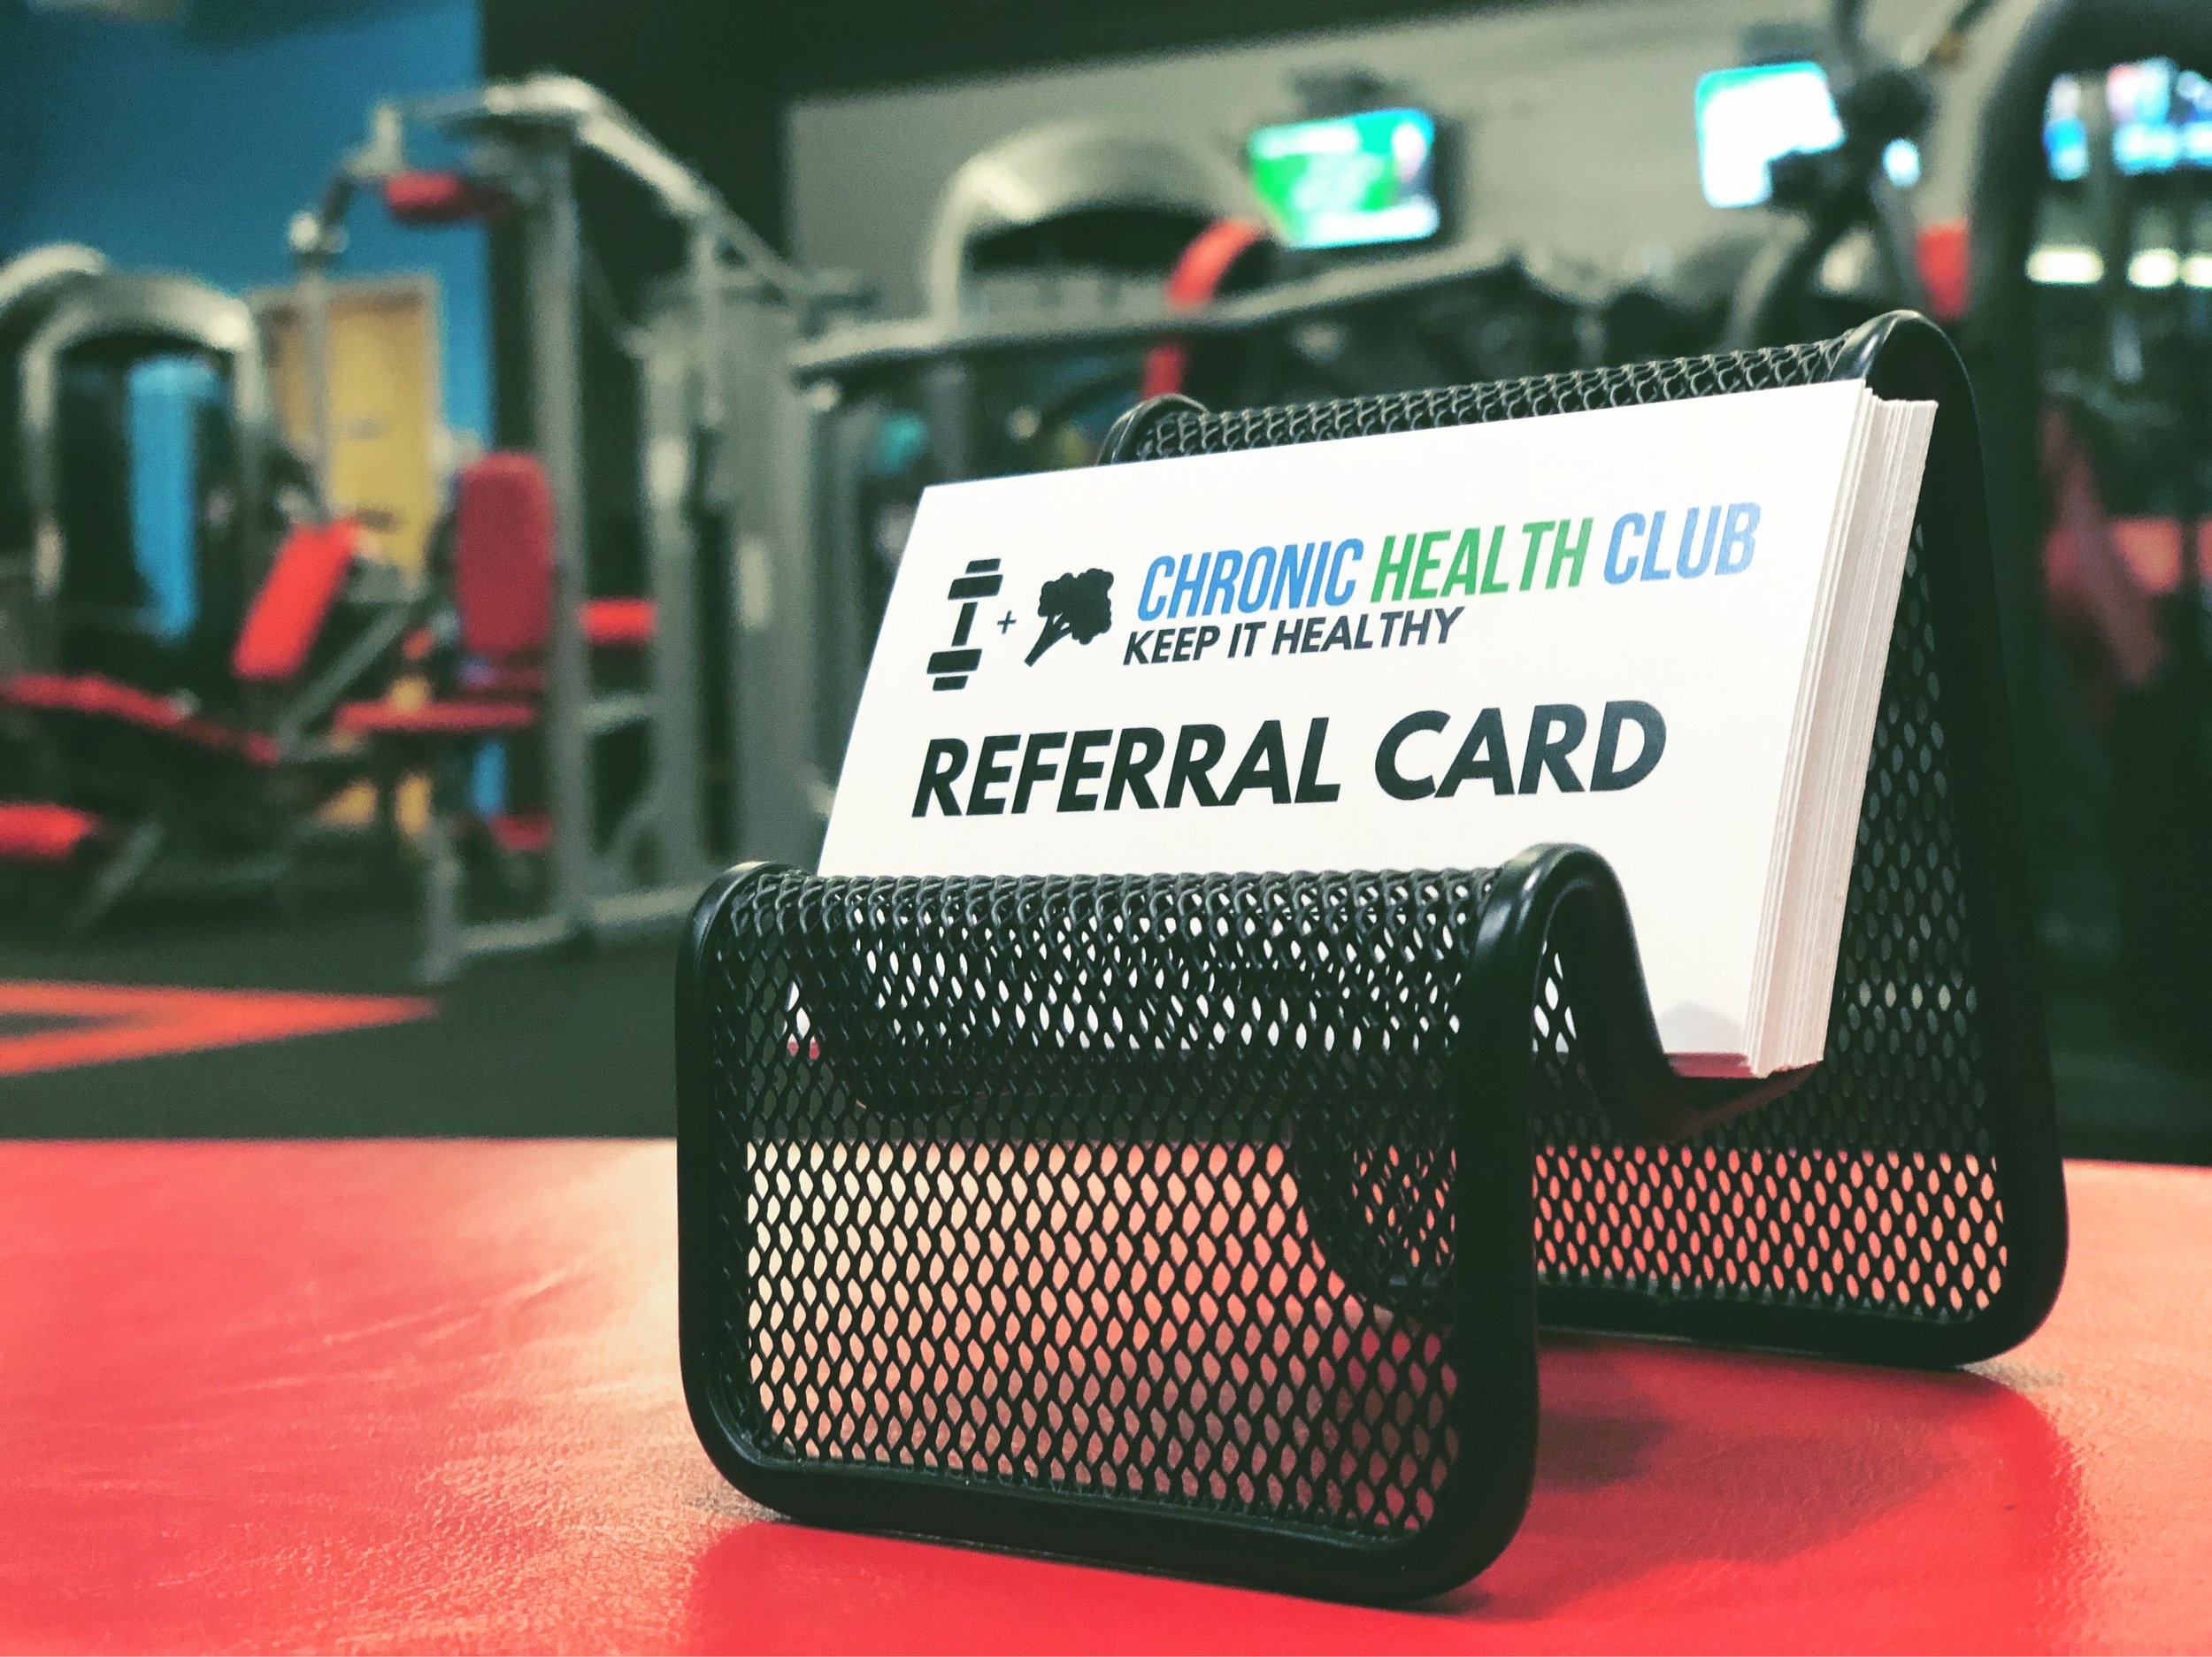 REFERRAL CARDS ARE AVAILABLE AT THE FRONT DESK AT THE CHRONIC HEALTH CLUB